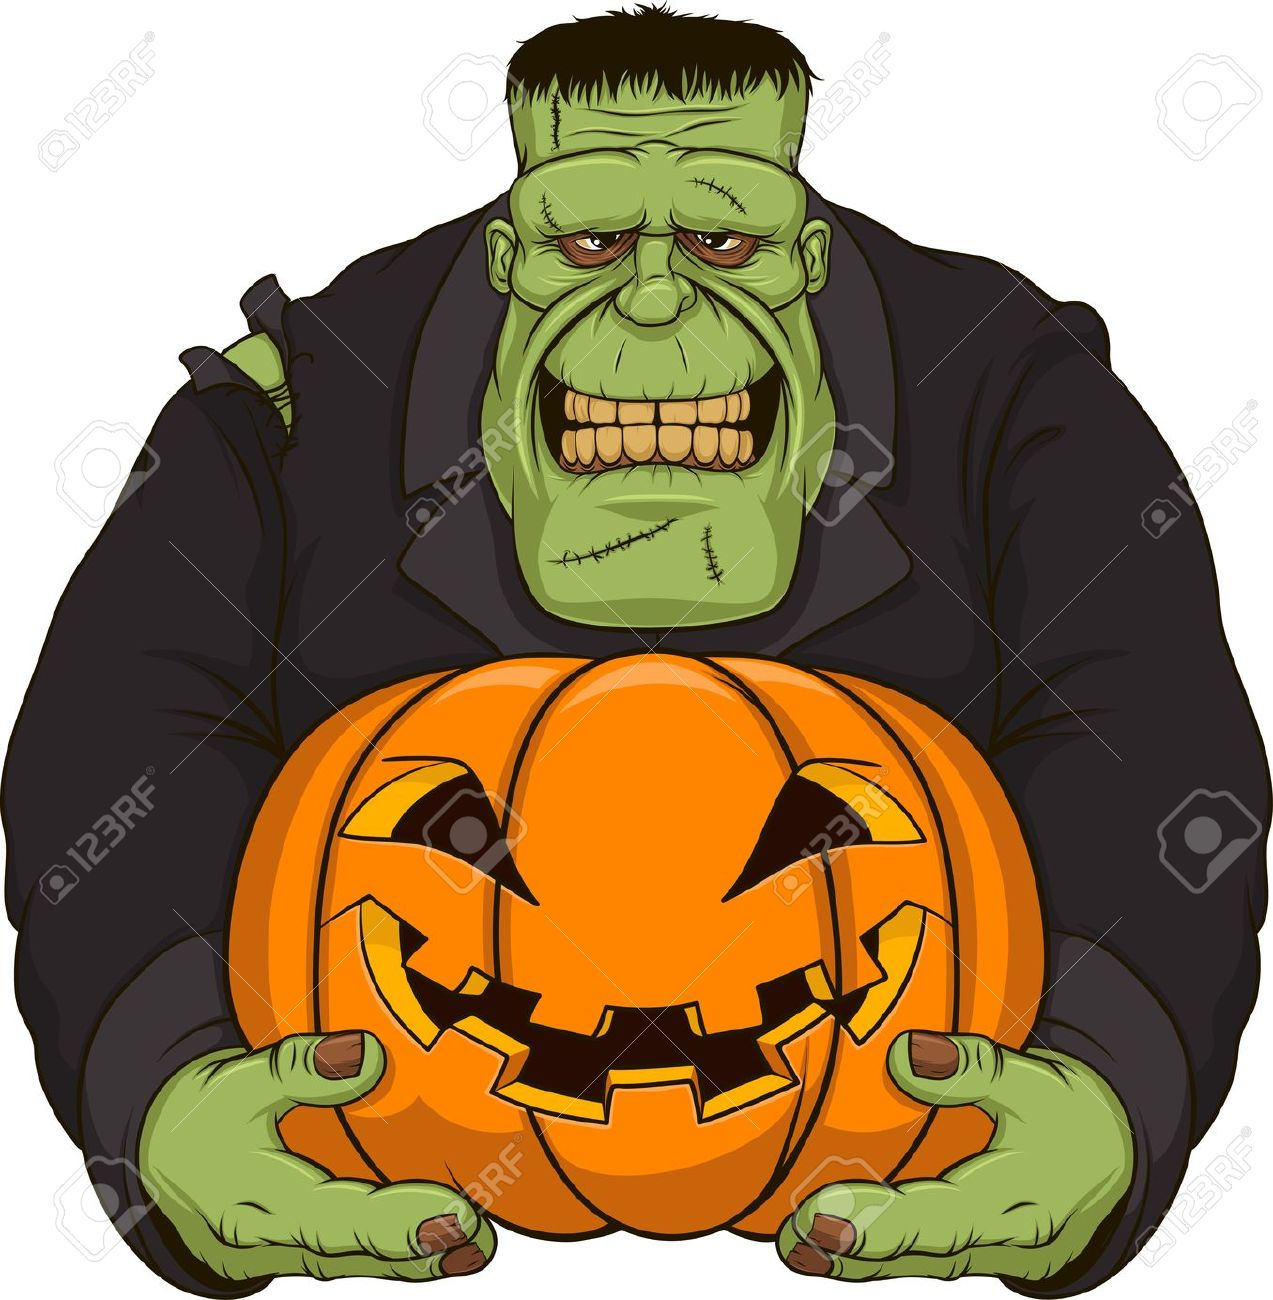 Frankenstein clipart cartoon Frankenstein com #22466 Best Clipartion